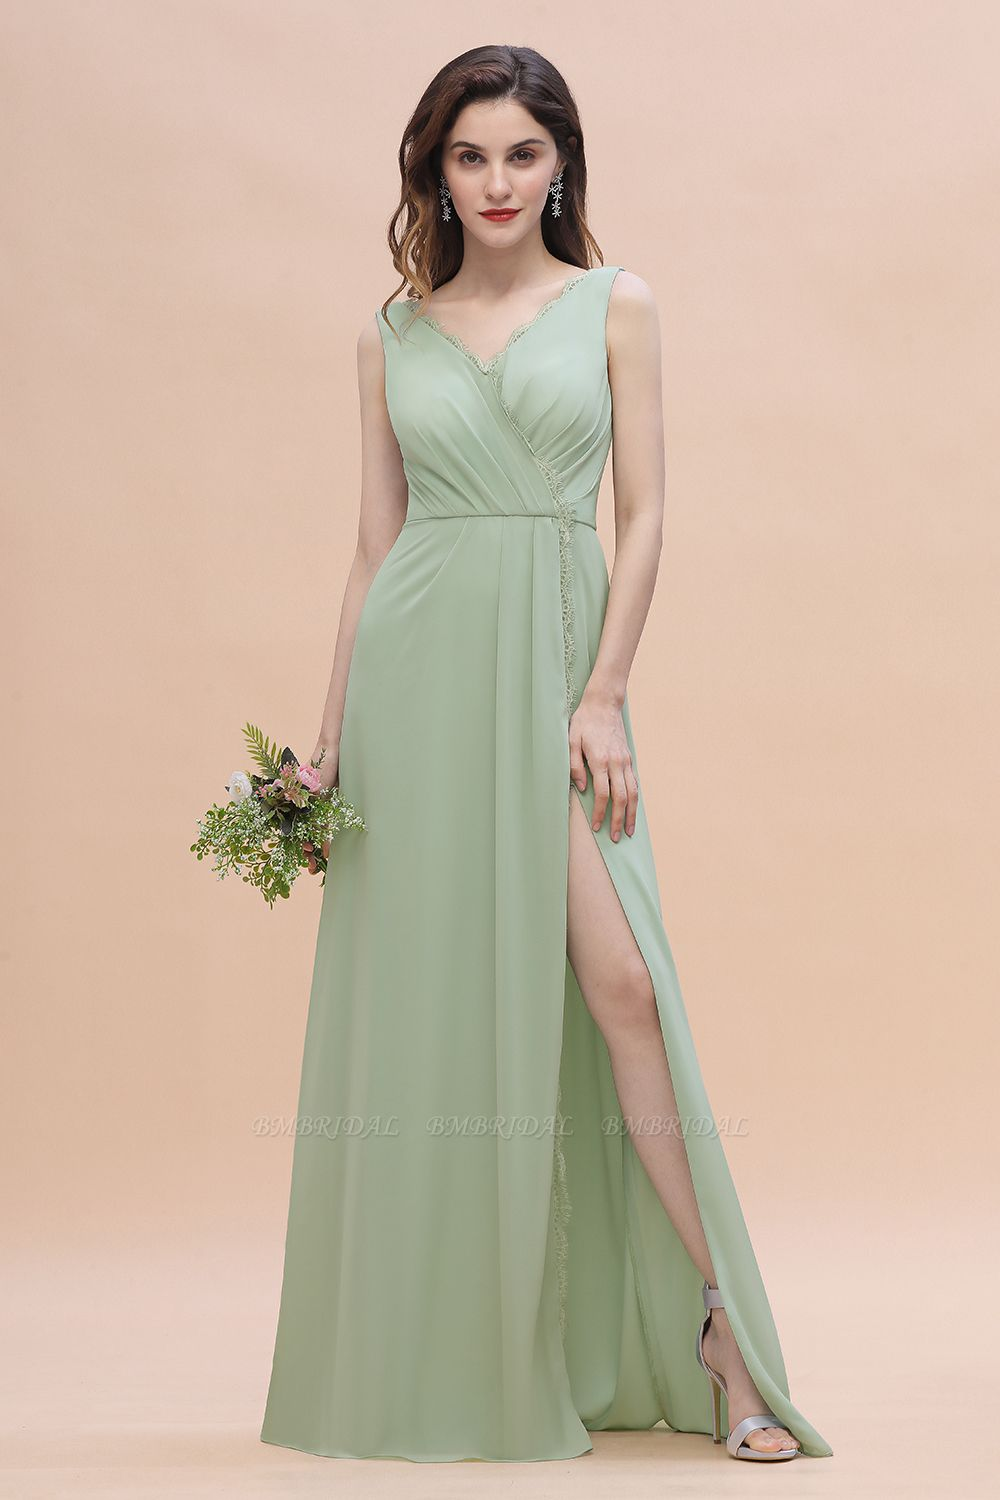 BMbridal Sexy Chiffon Ruffles Dusty Sage Bridesmaid Dress with Lace Edge On Sale